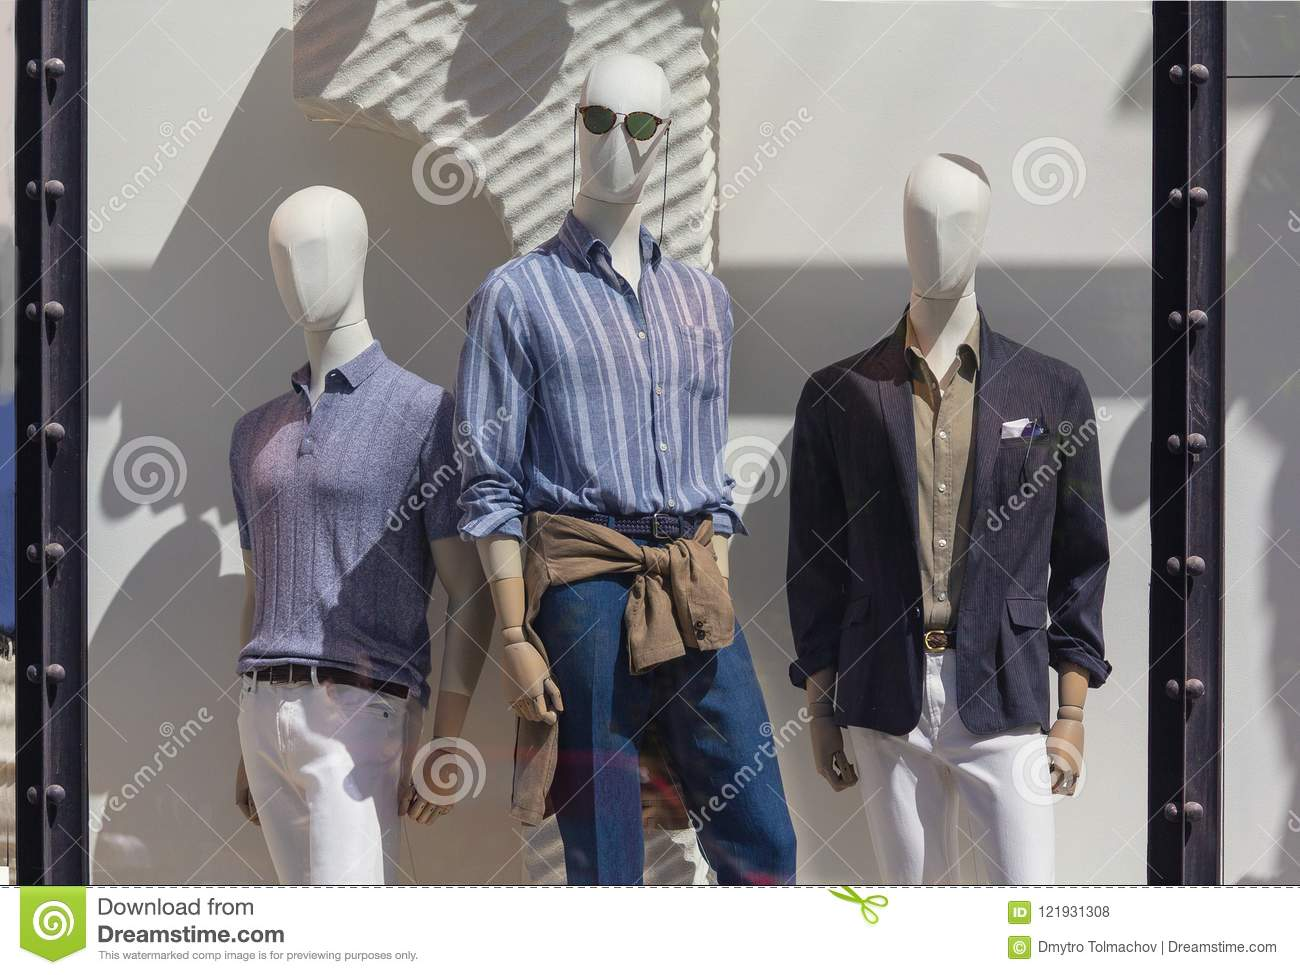 9e22746c2 Men`s mannequins in the window of a luxury store. Sale. More similar stock  images. Mannequins on the shop window fashion style stylish clothes ...